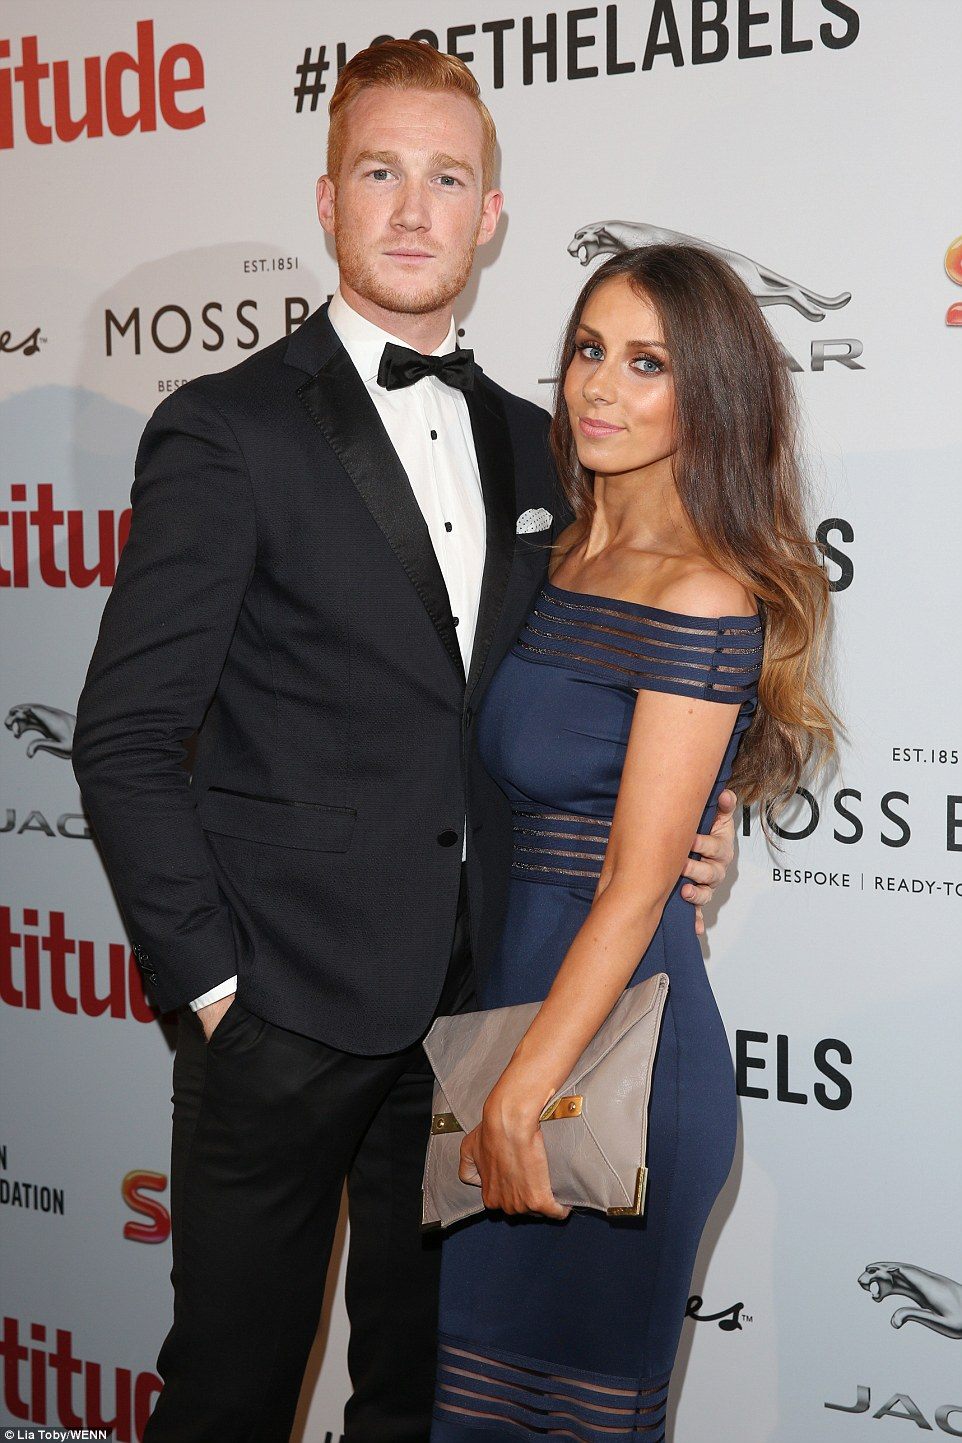 The happy couple: Yet another star from this year's Strictly intake was Olympian Greg Rutherford. The track and field athlete cut an extremely dashing figure in a tuxedo